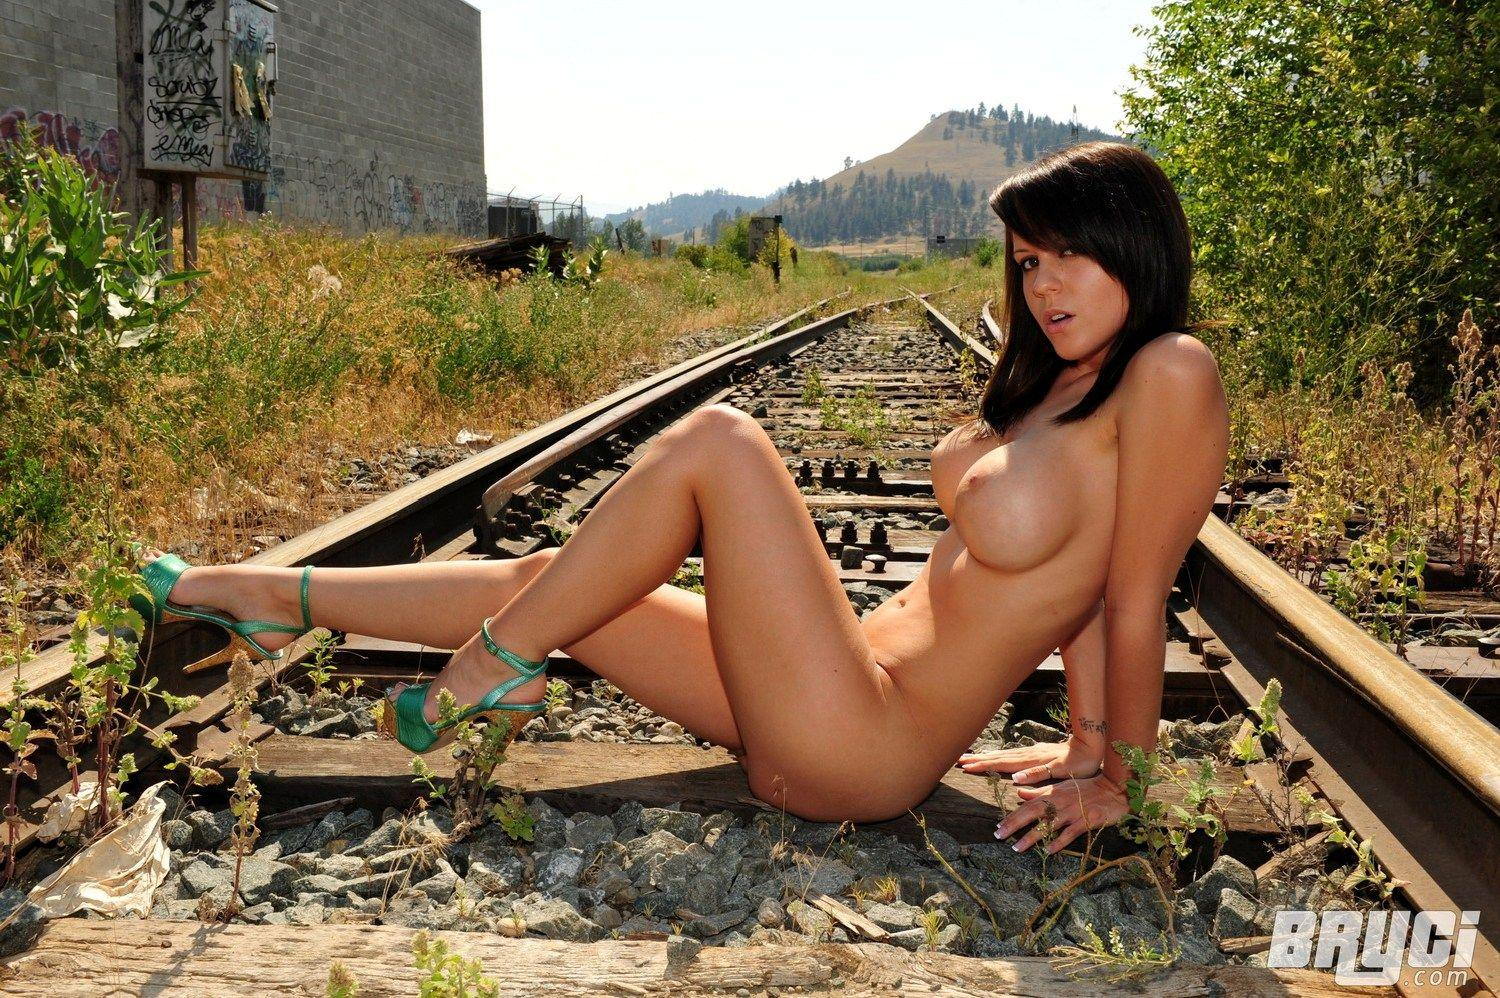 the train on Nude